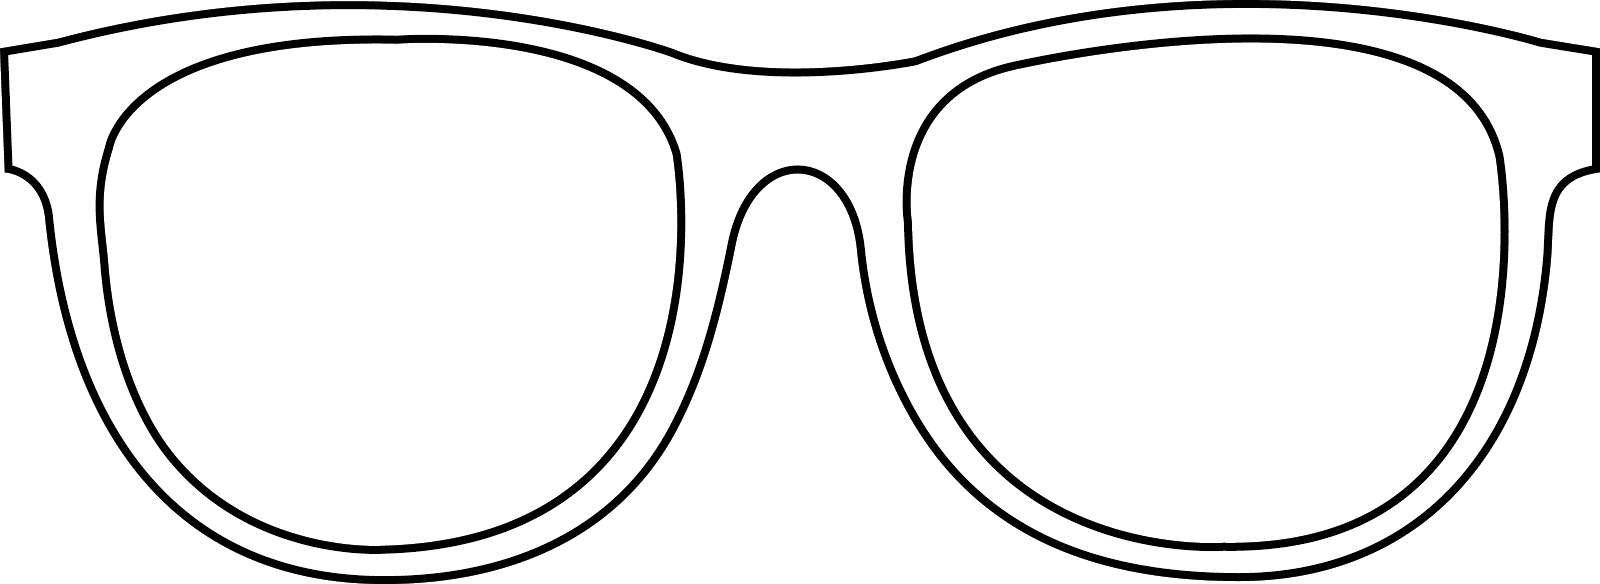 Sunglass svg colouring. Sunglasses outline clip art